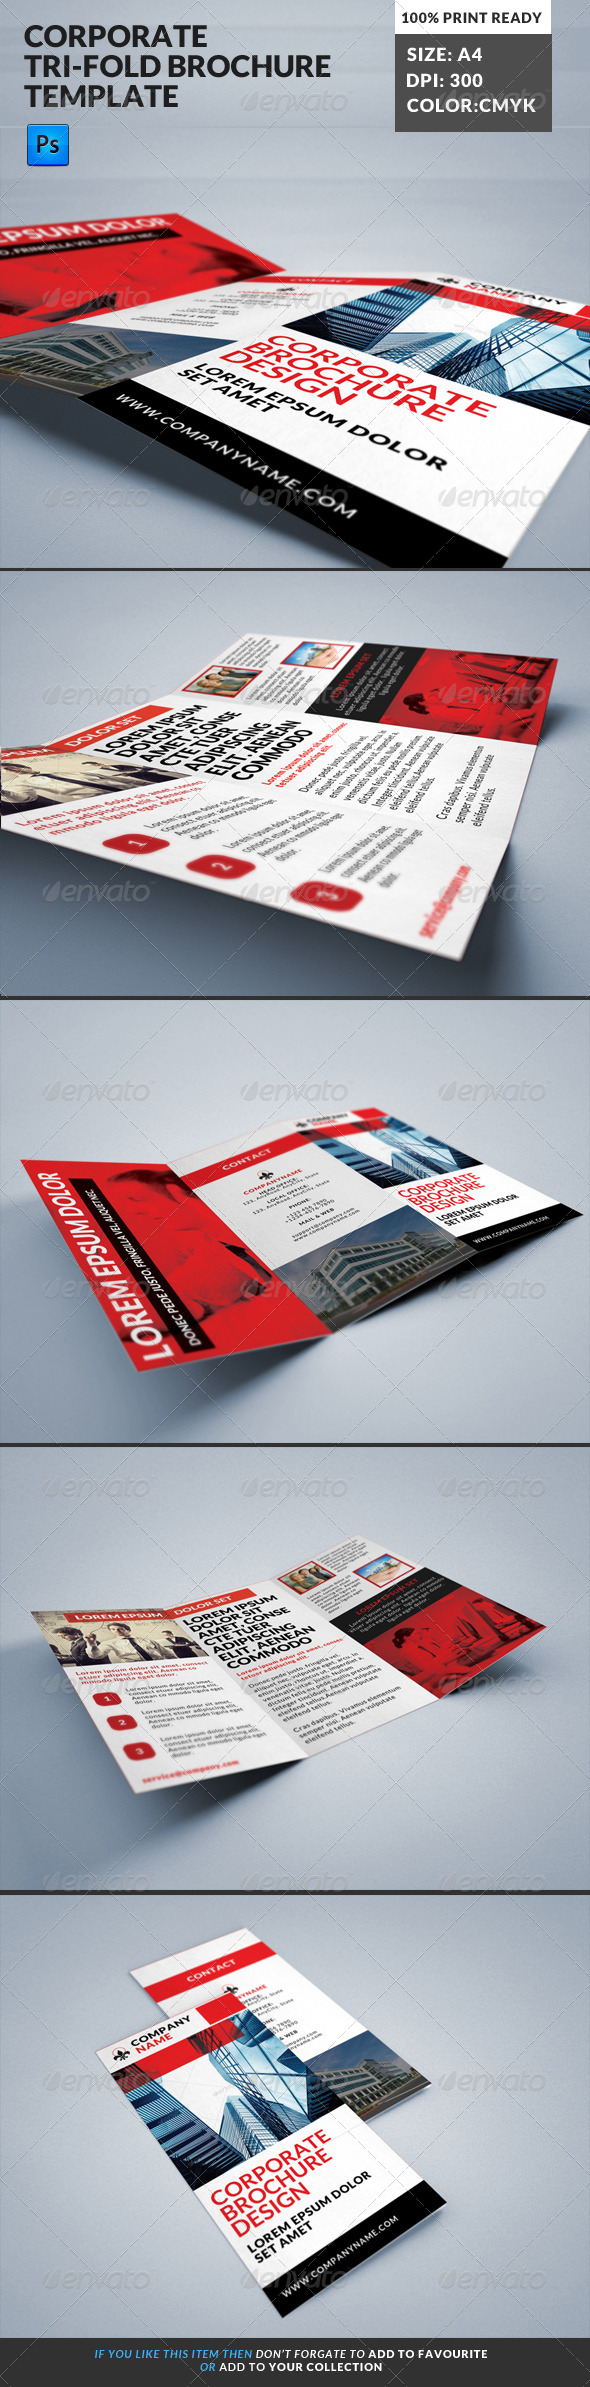 GraphicRiver Corporate Tri-Fold Brochures Template 15 8179388